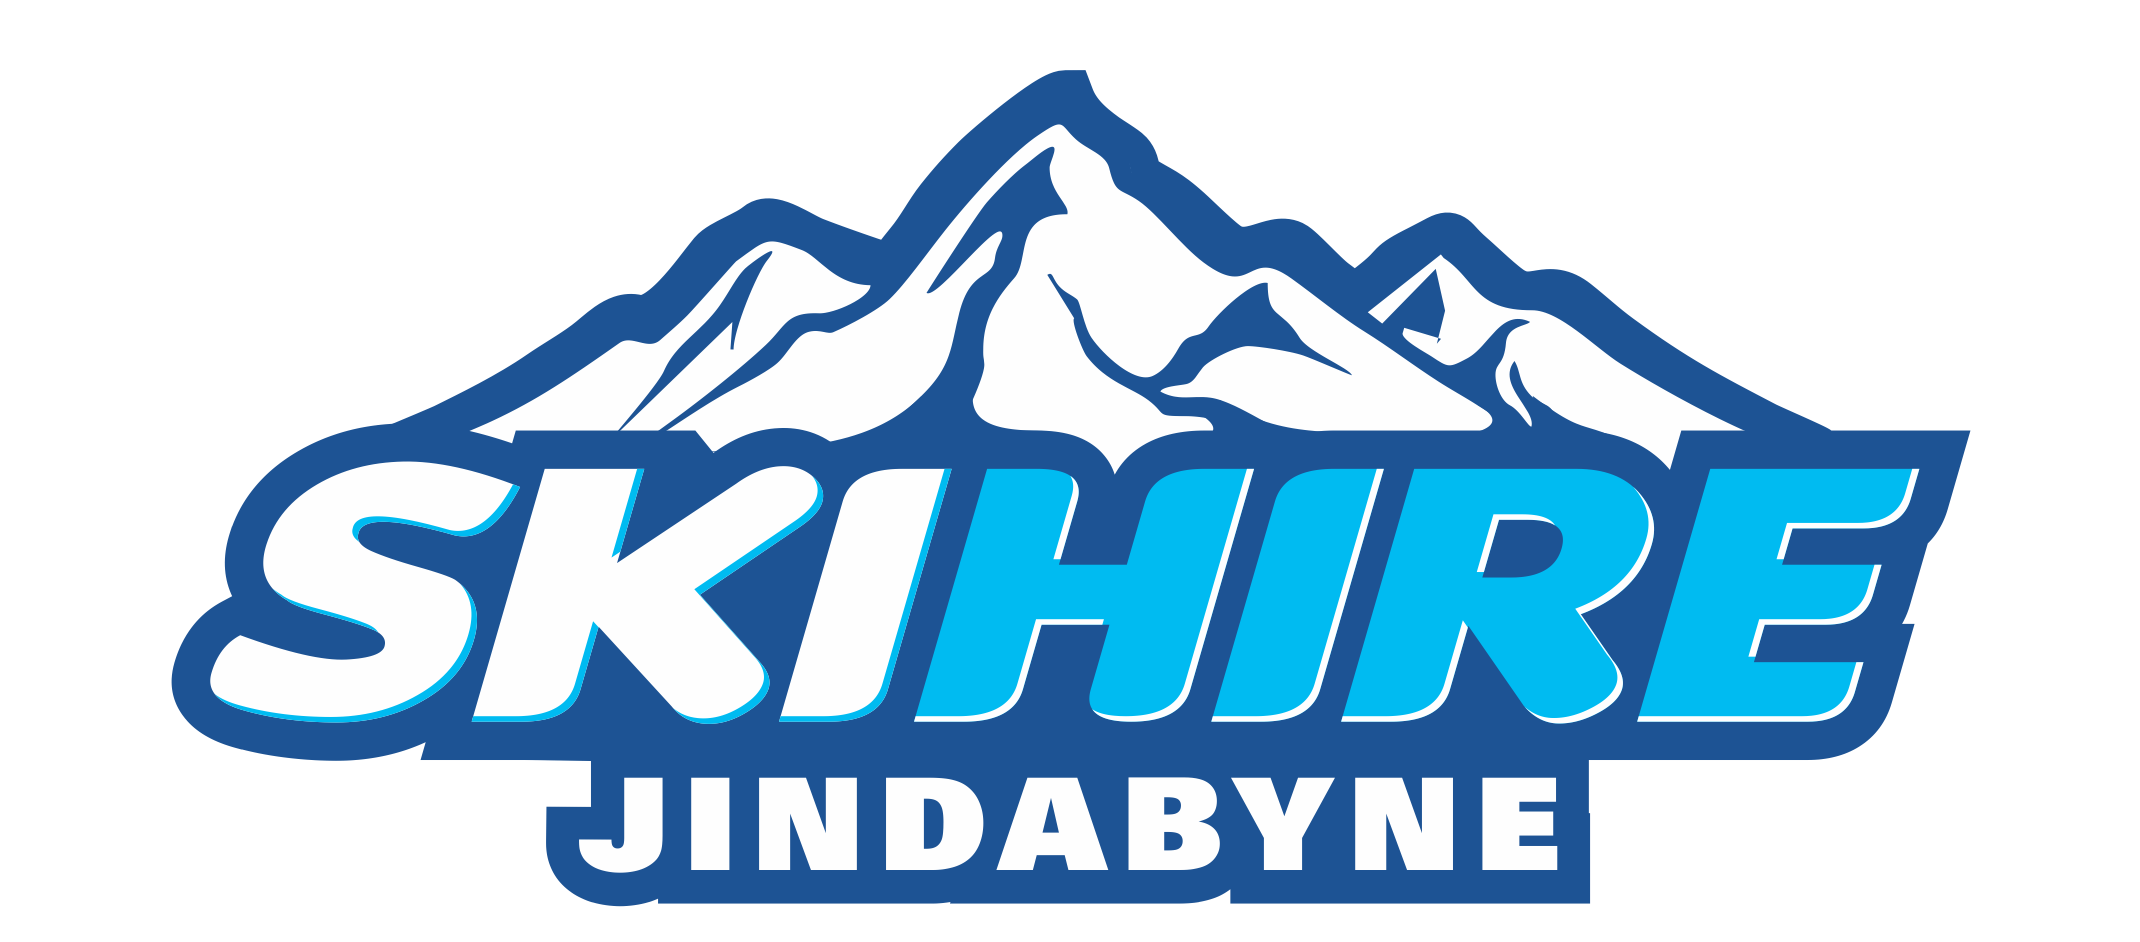 Jindabyne Ski Hire | Thredbo & Perisher Discounted Ski Hire | Snowboard Rental